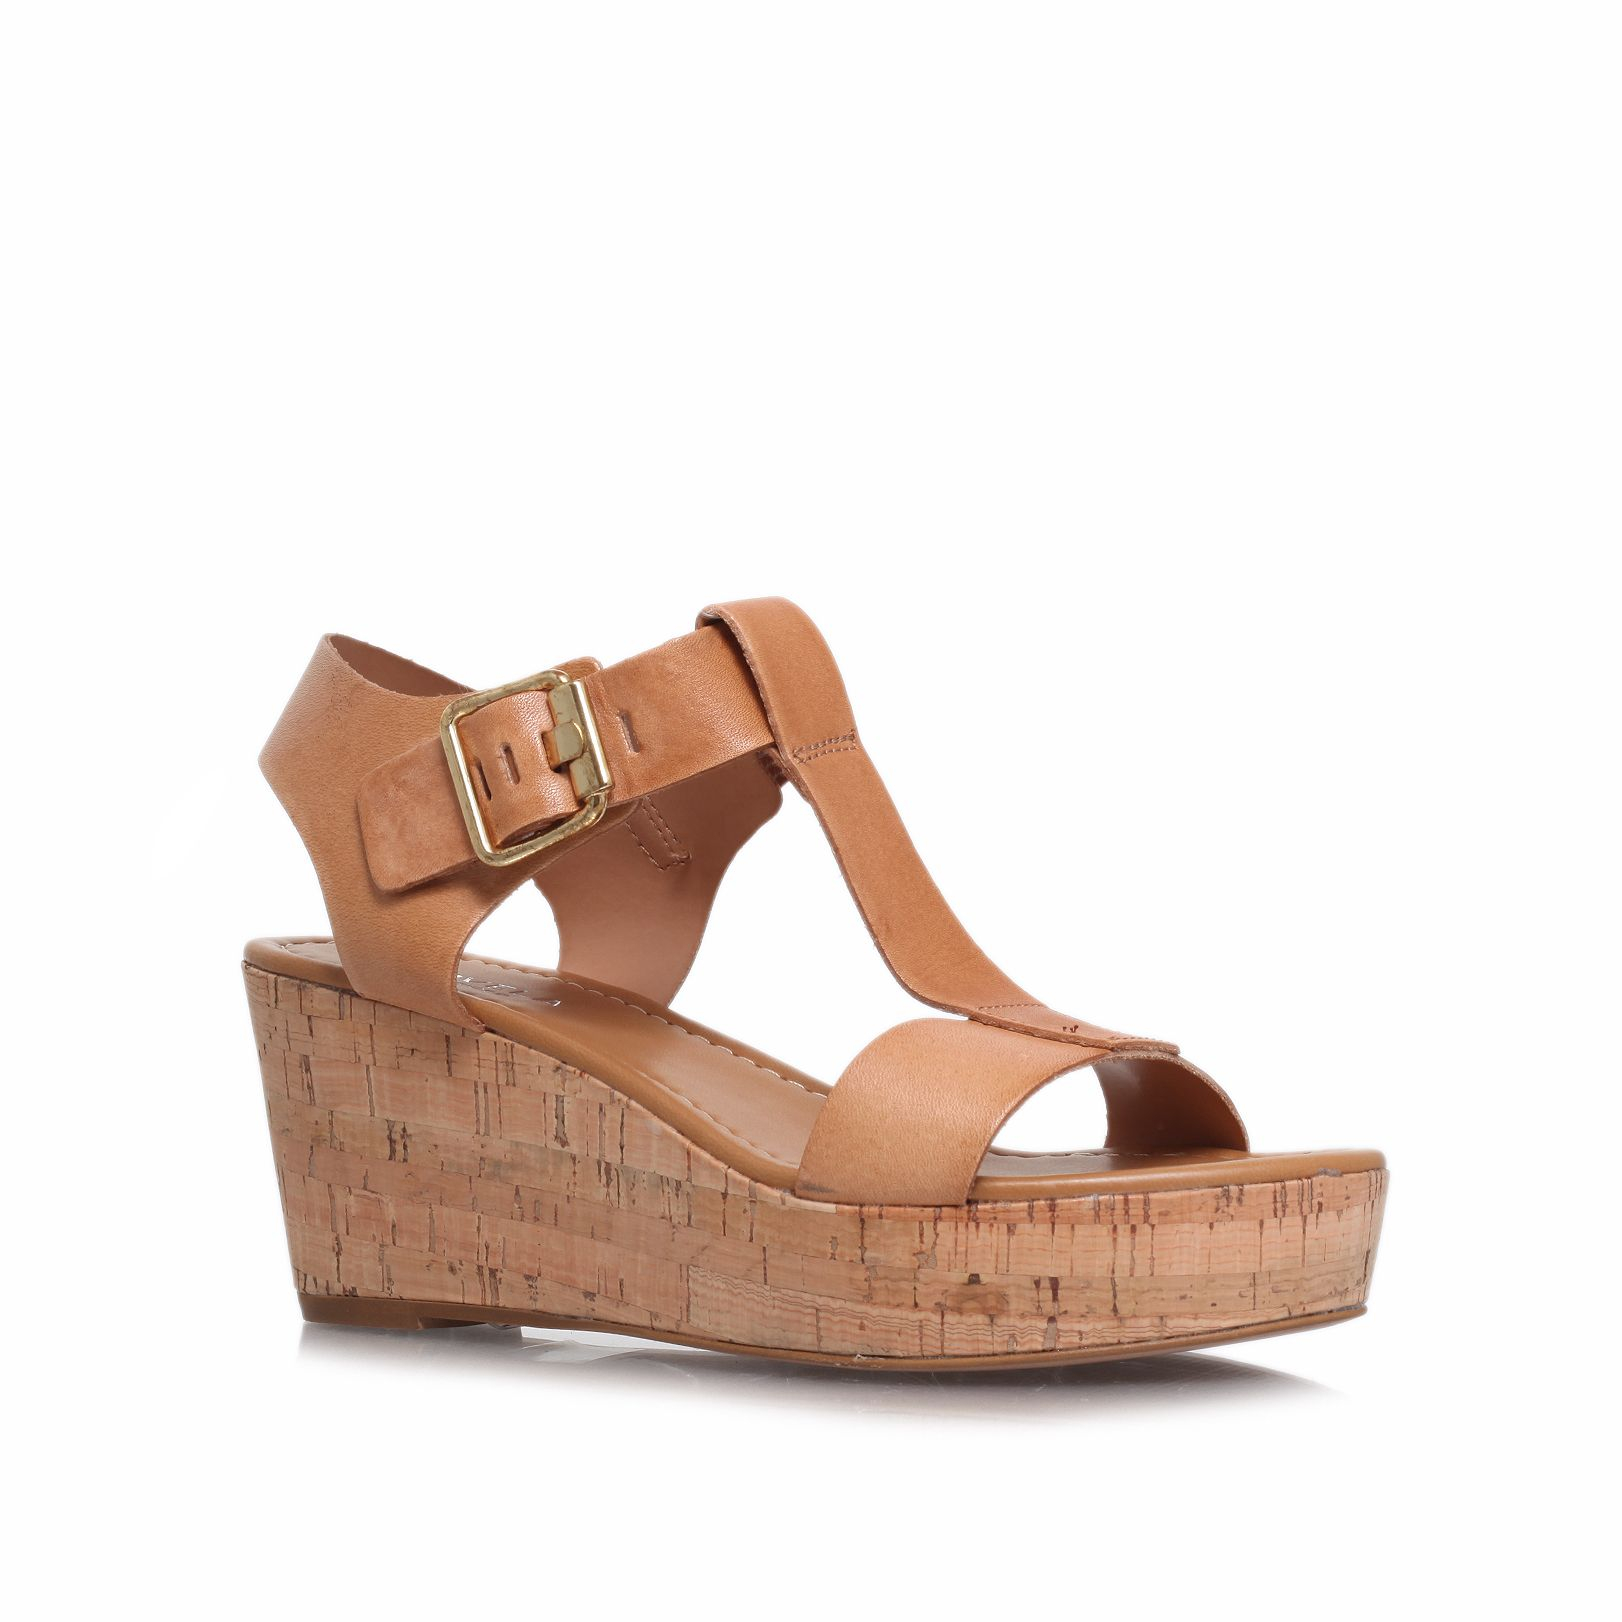 Carvela Sandals Gold Katrina Wedge Heel J329V5Pn Sale Store